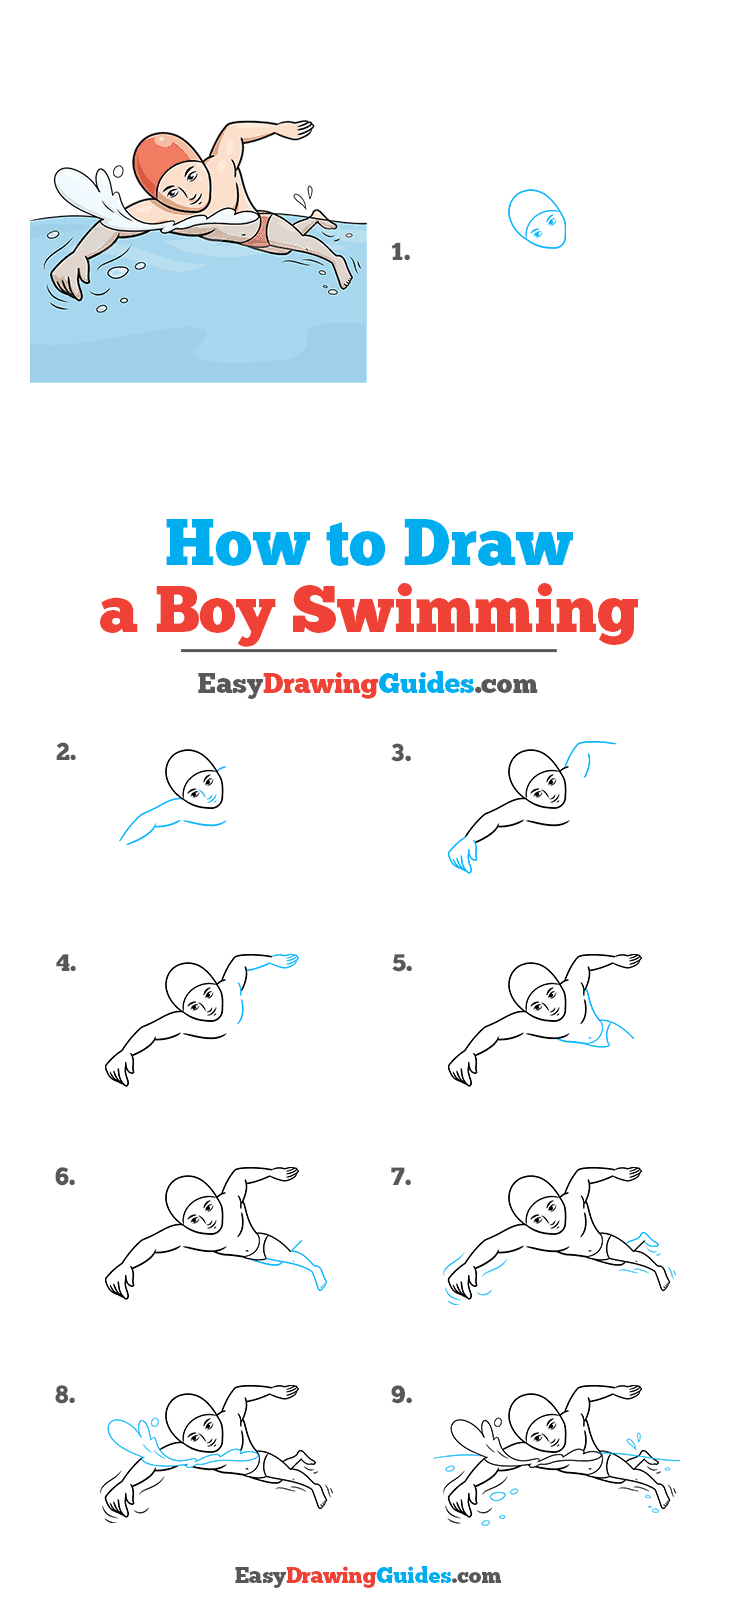 How to Draw a Boy Swimming Step by Step Tutorial Image